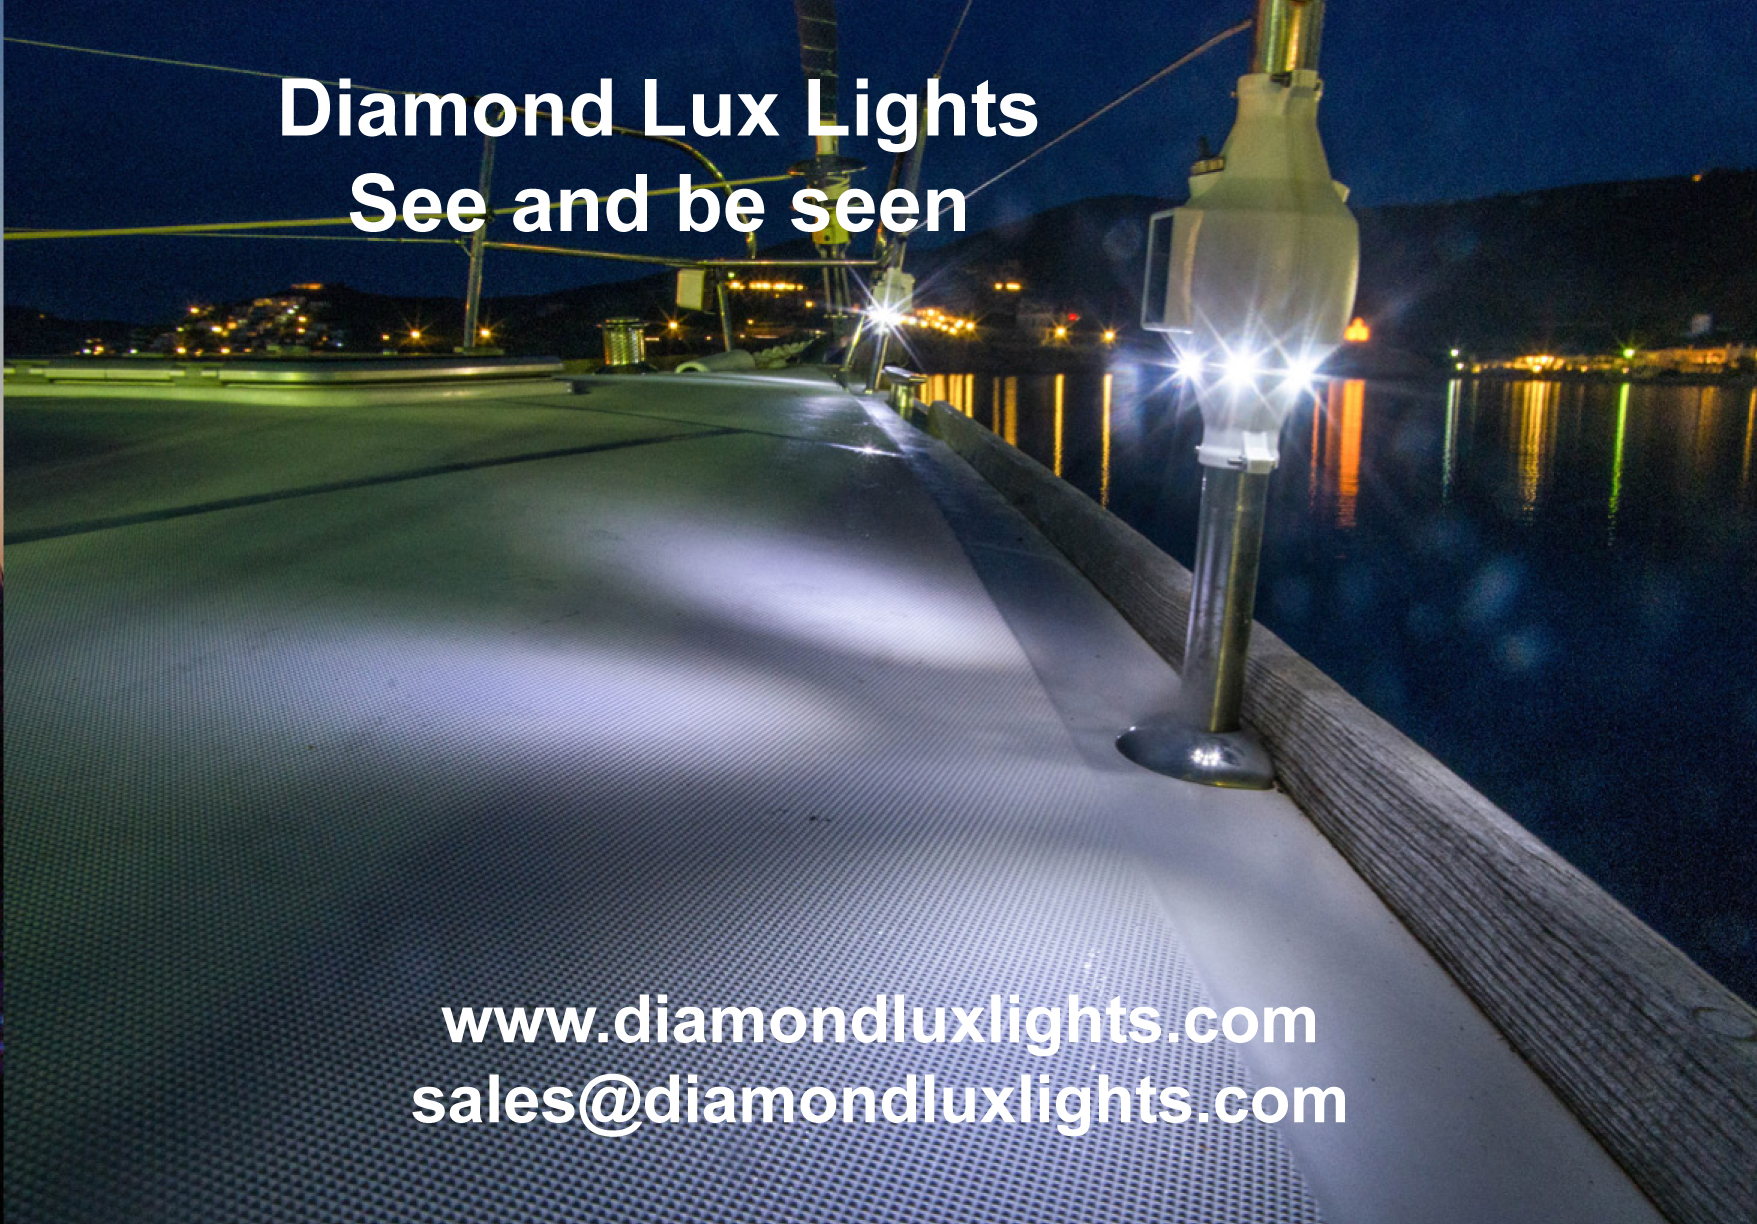 Marine deck led lights - Diamond Lux Lights